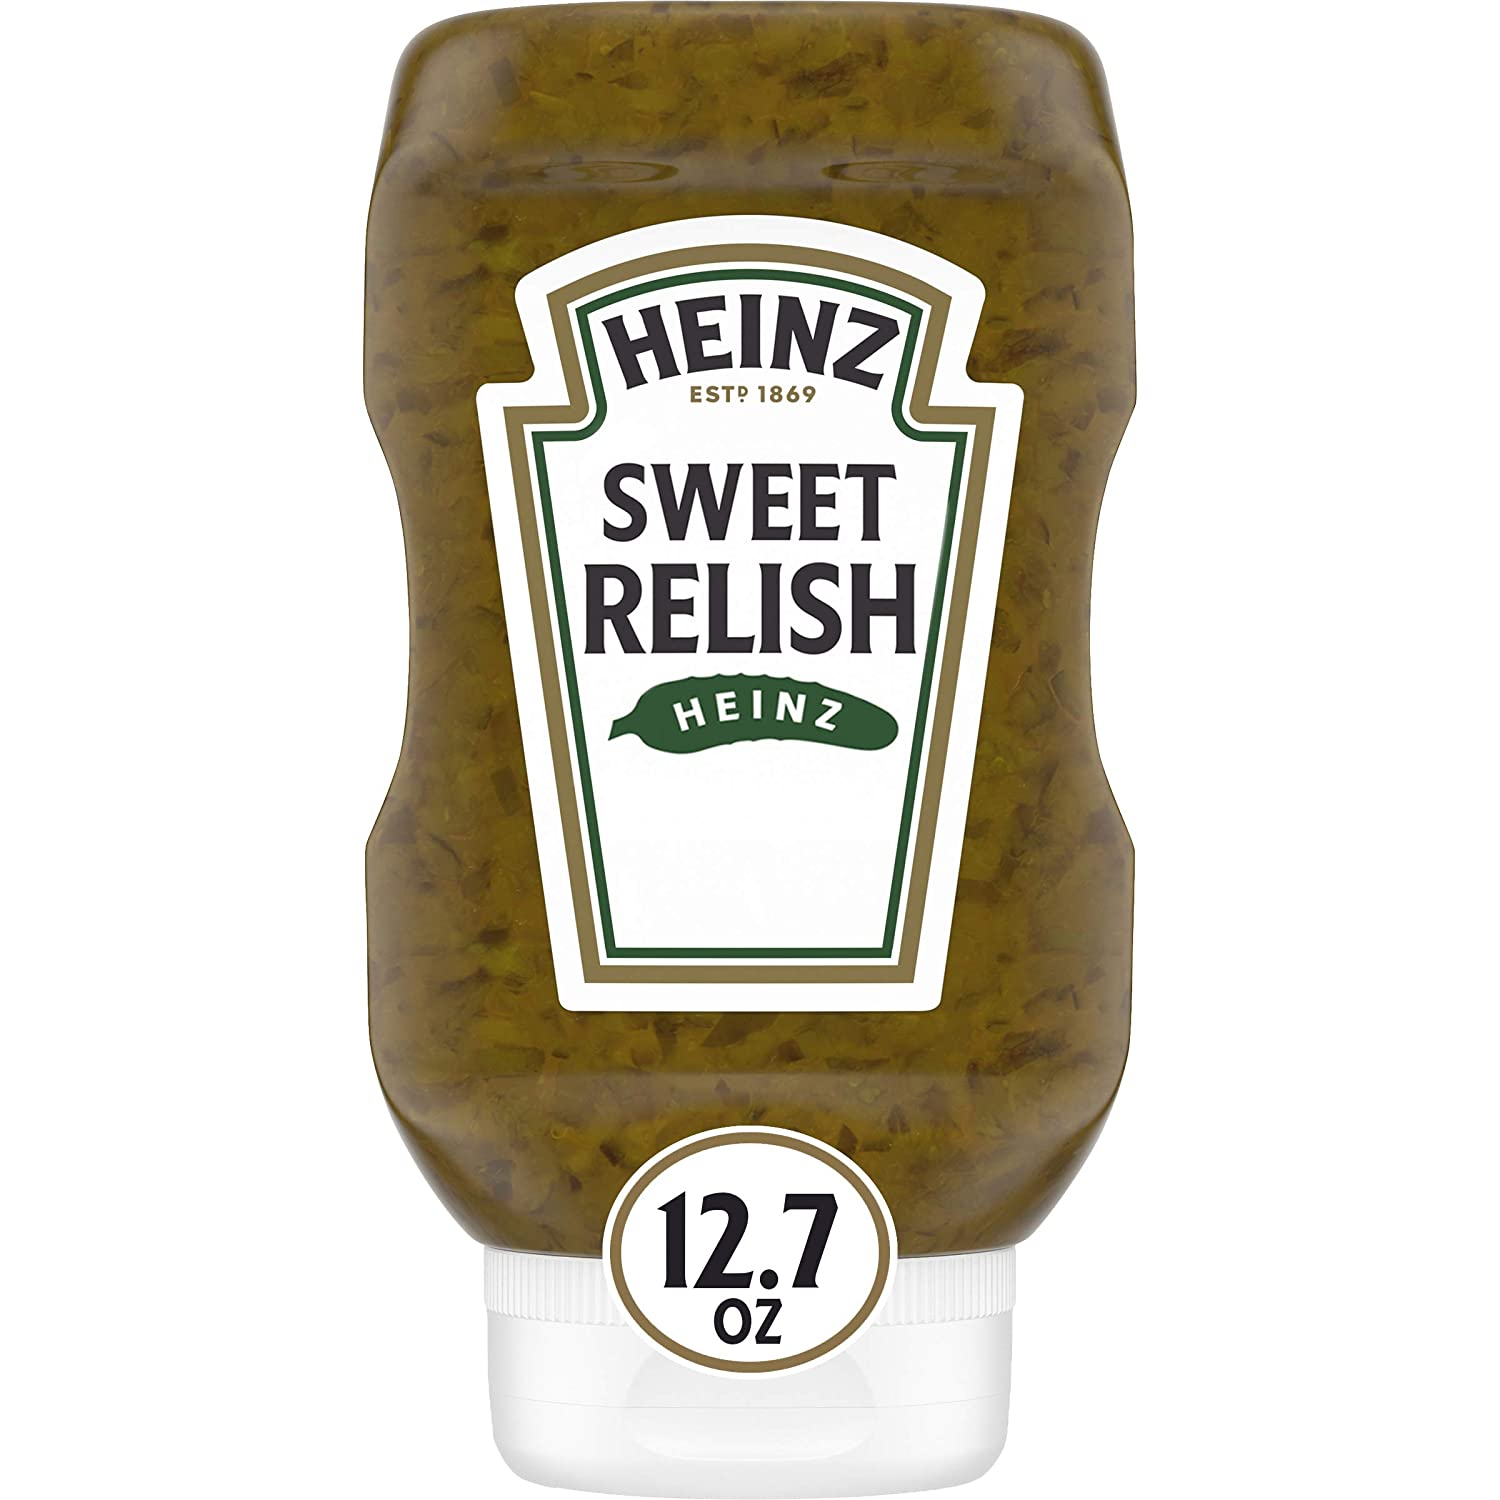 Heinz Popular products Sweet Relish Minneapolis Mall 12 ct Bottles fl 12.7 Pack oz